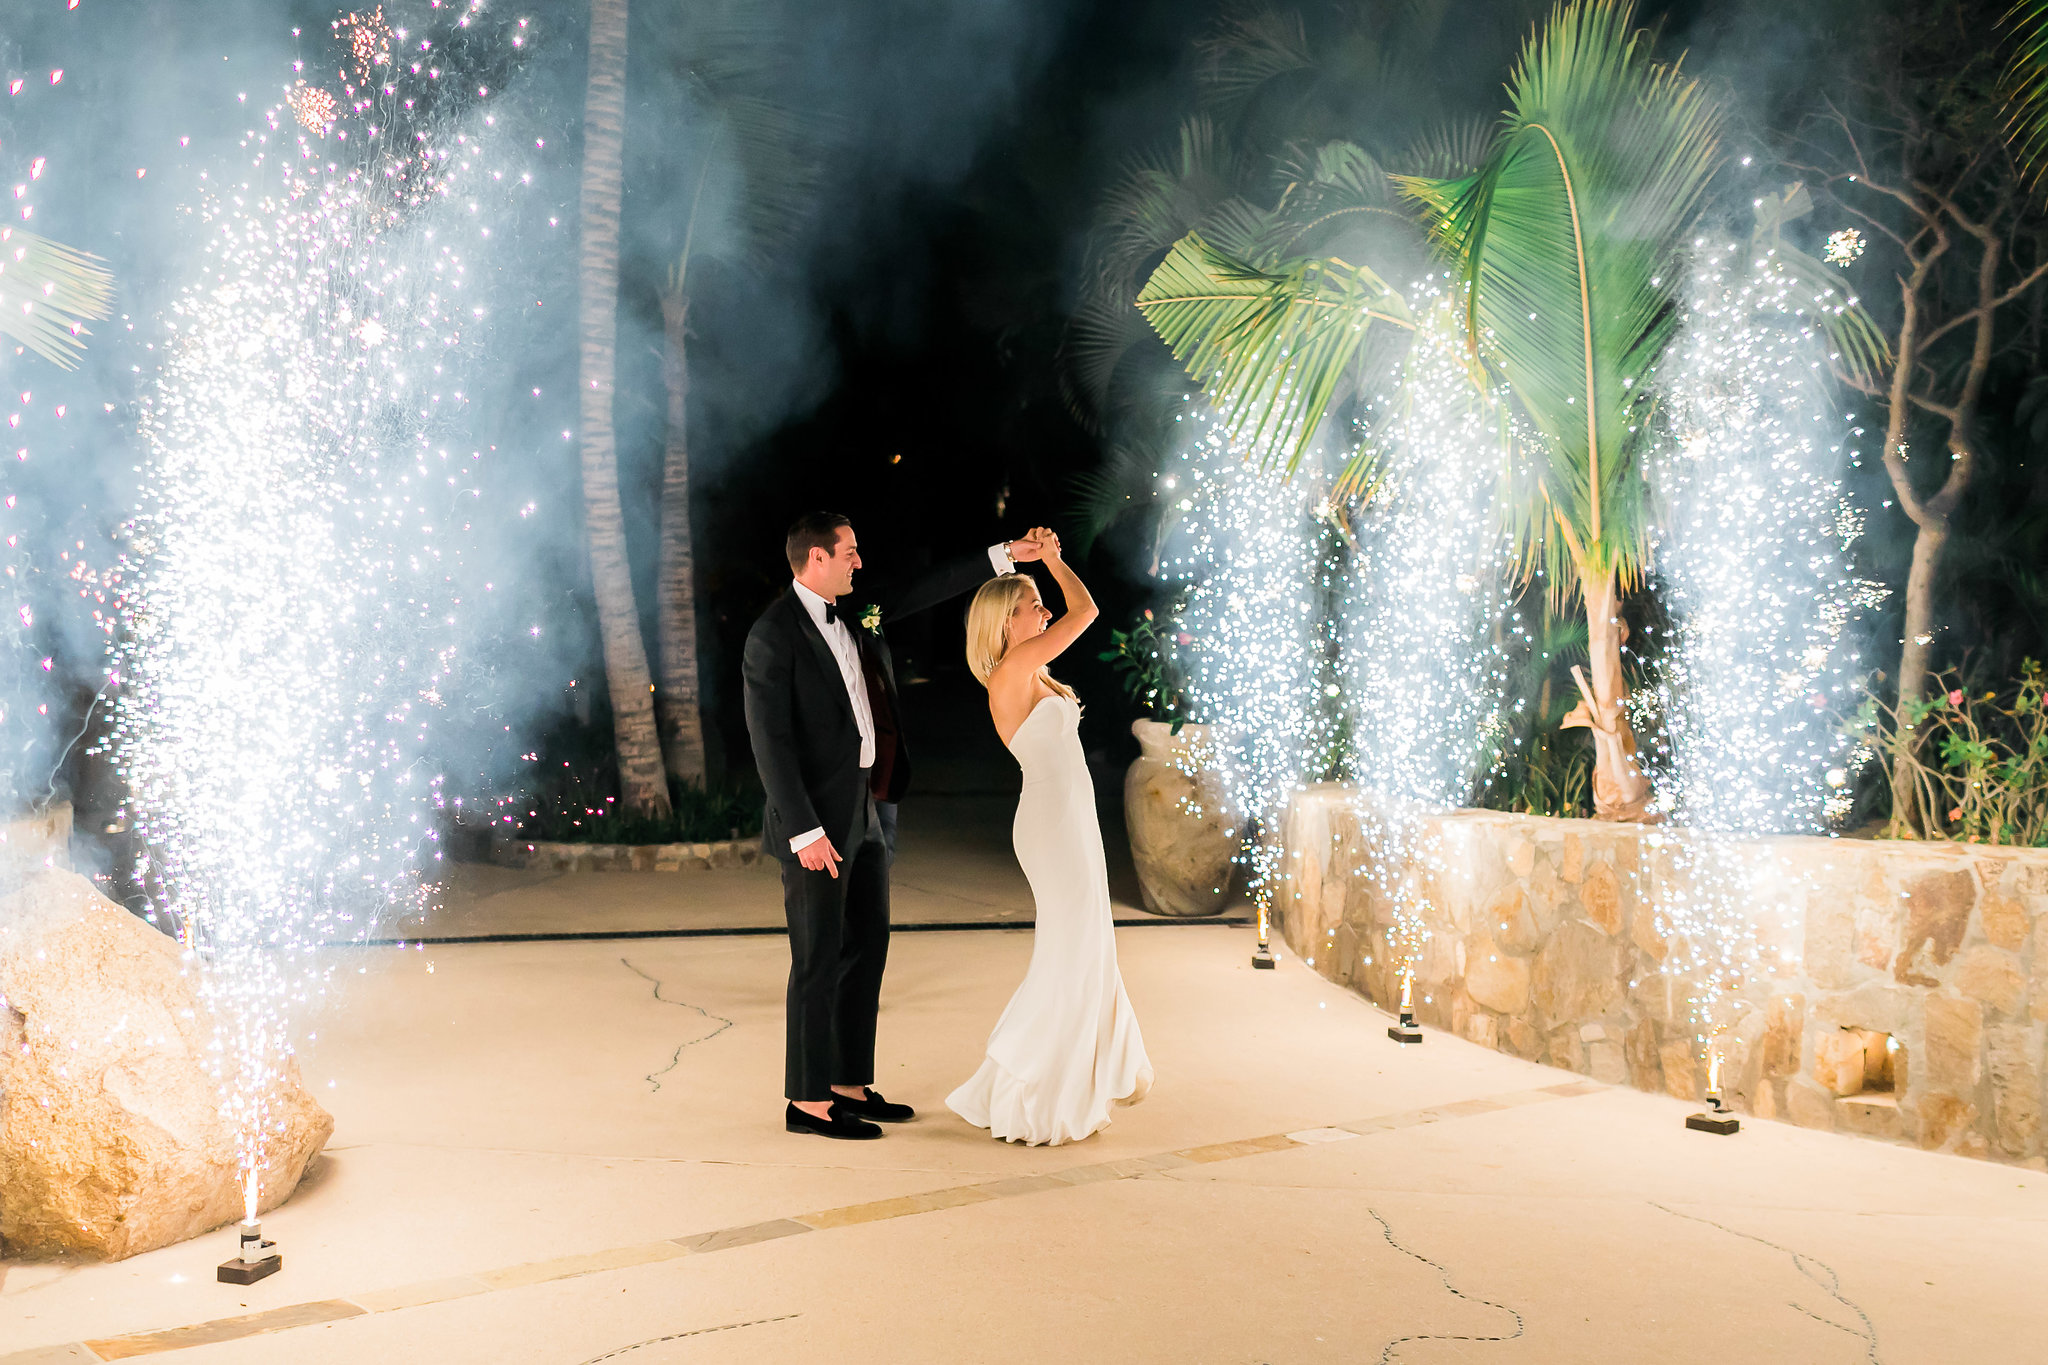 amazing fireworks entrance to reception at White Wedding At The One & Only Palmilla